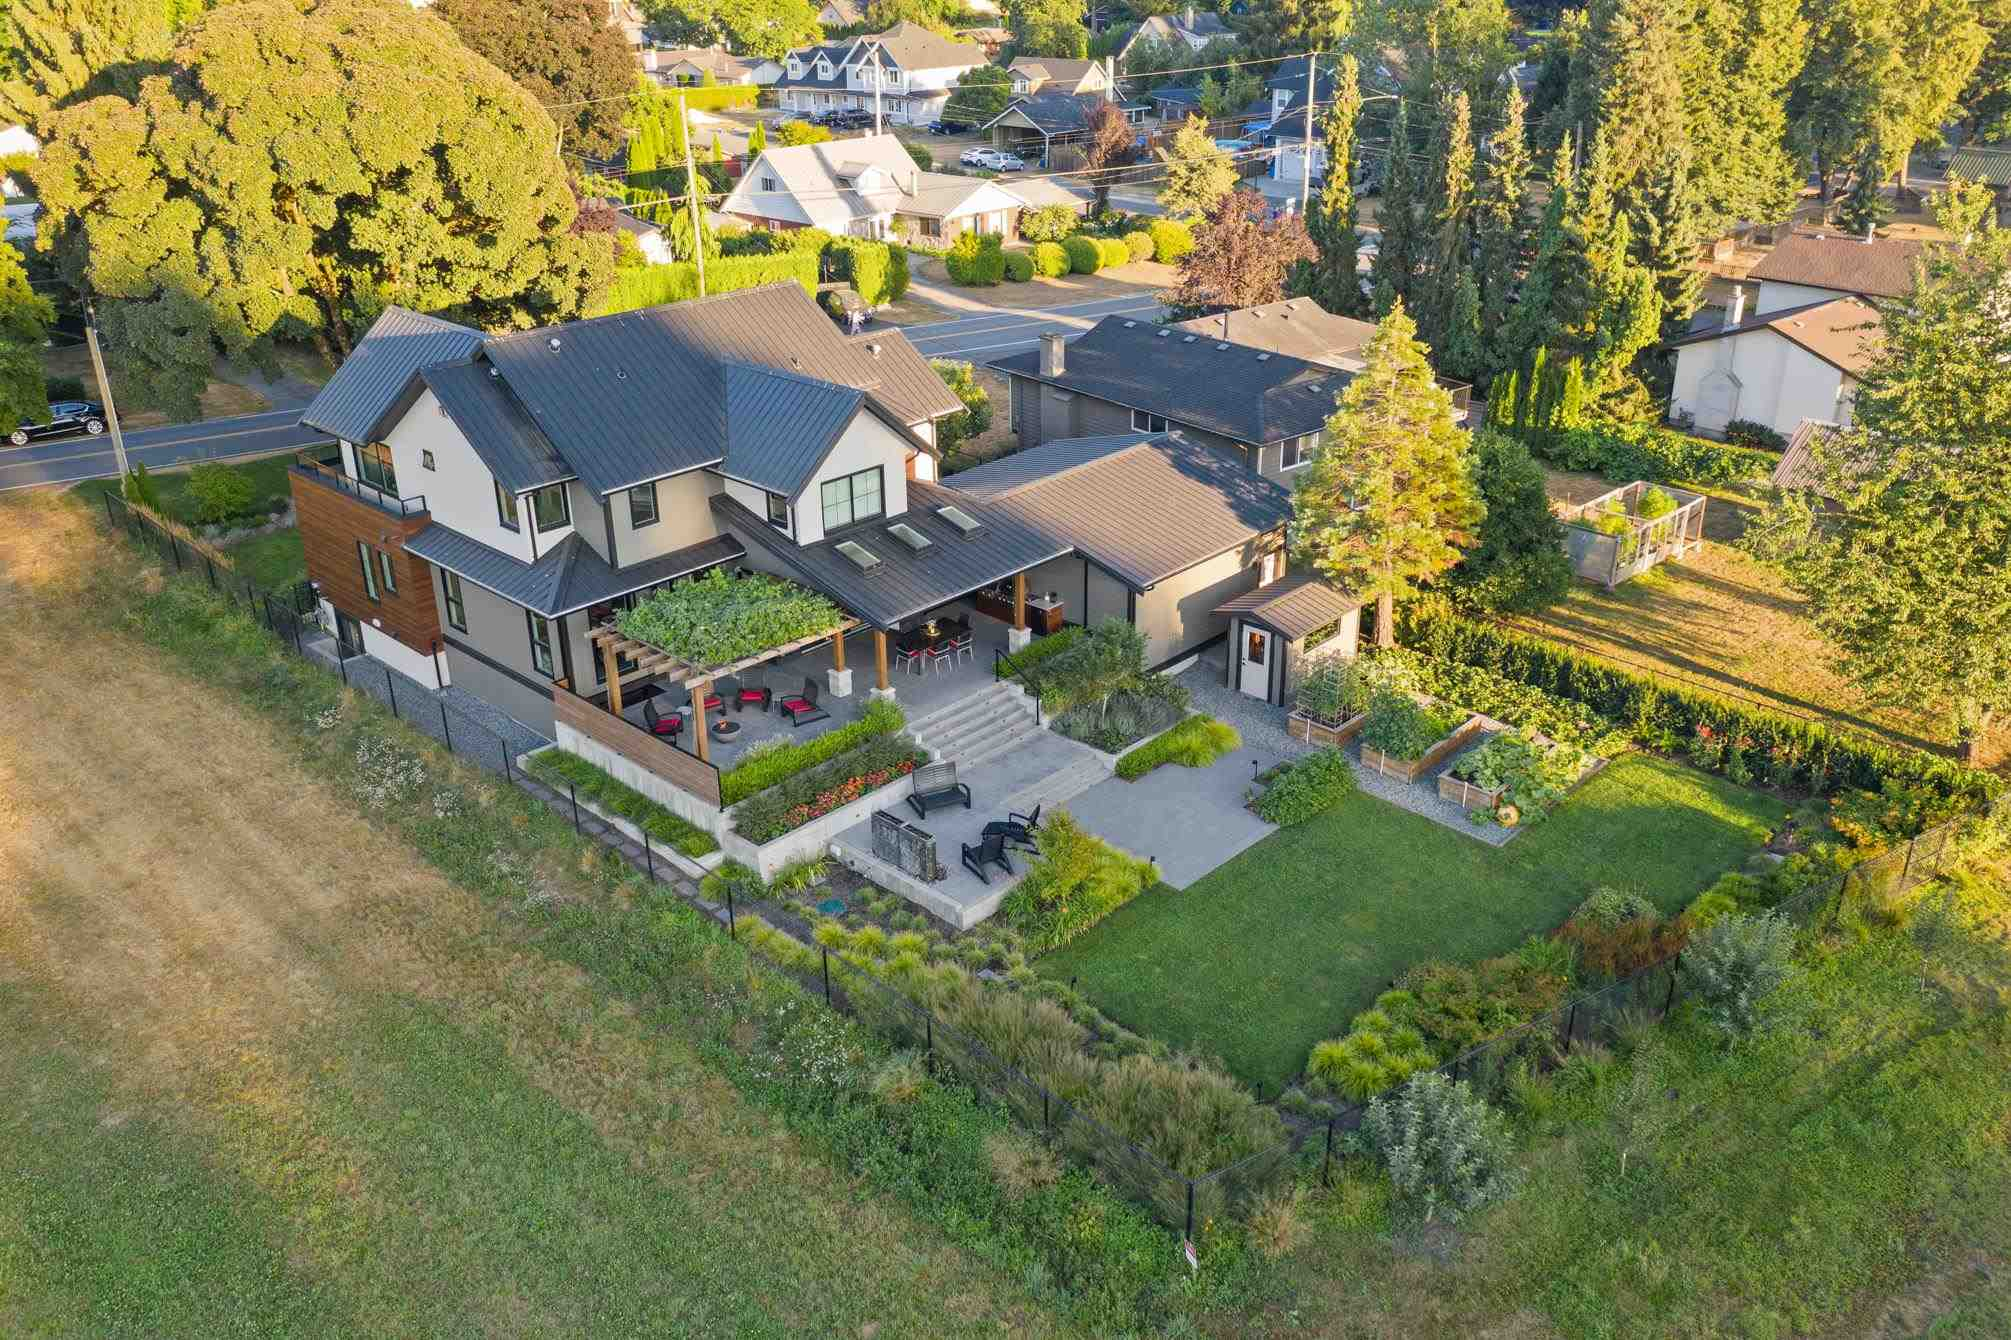 9147 WRIGHT STREET - Fort Langley House/Single Family for sale, 4 Bedrooms (R2607692) - #1